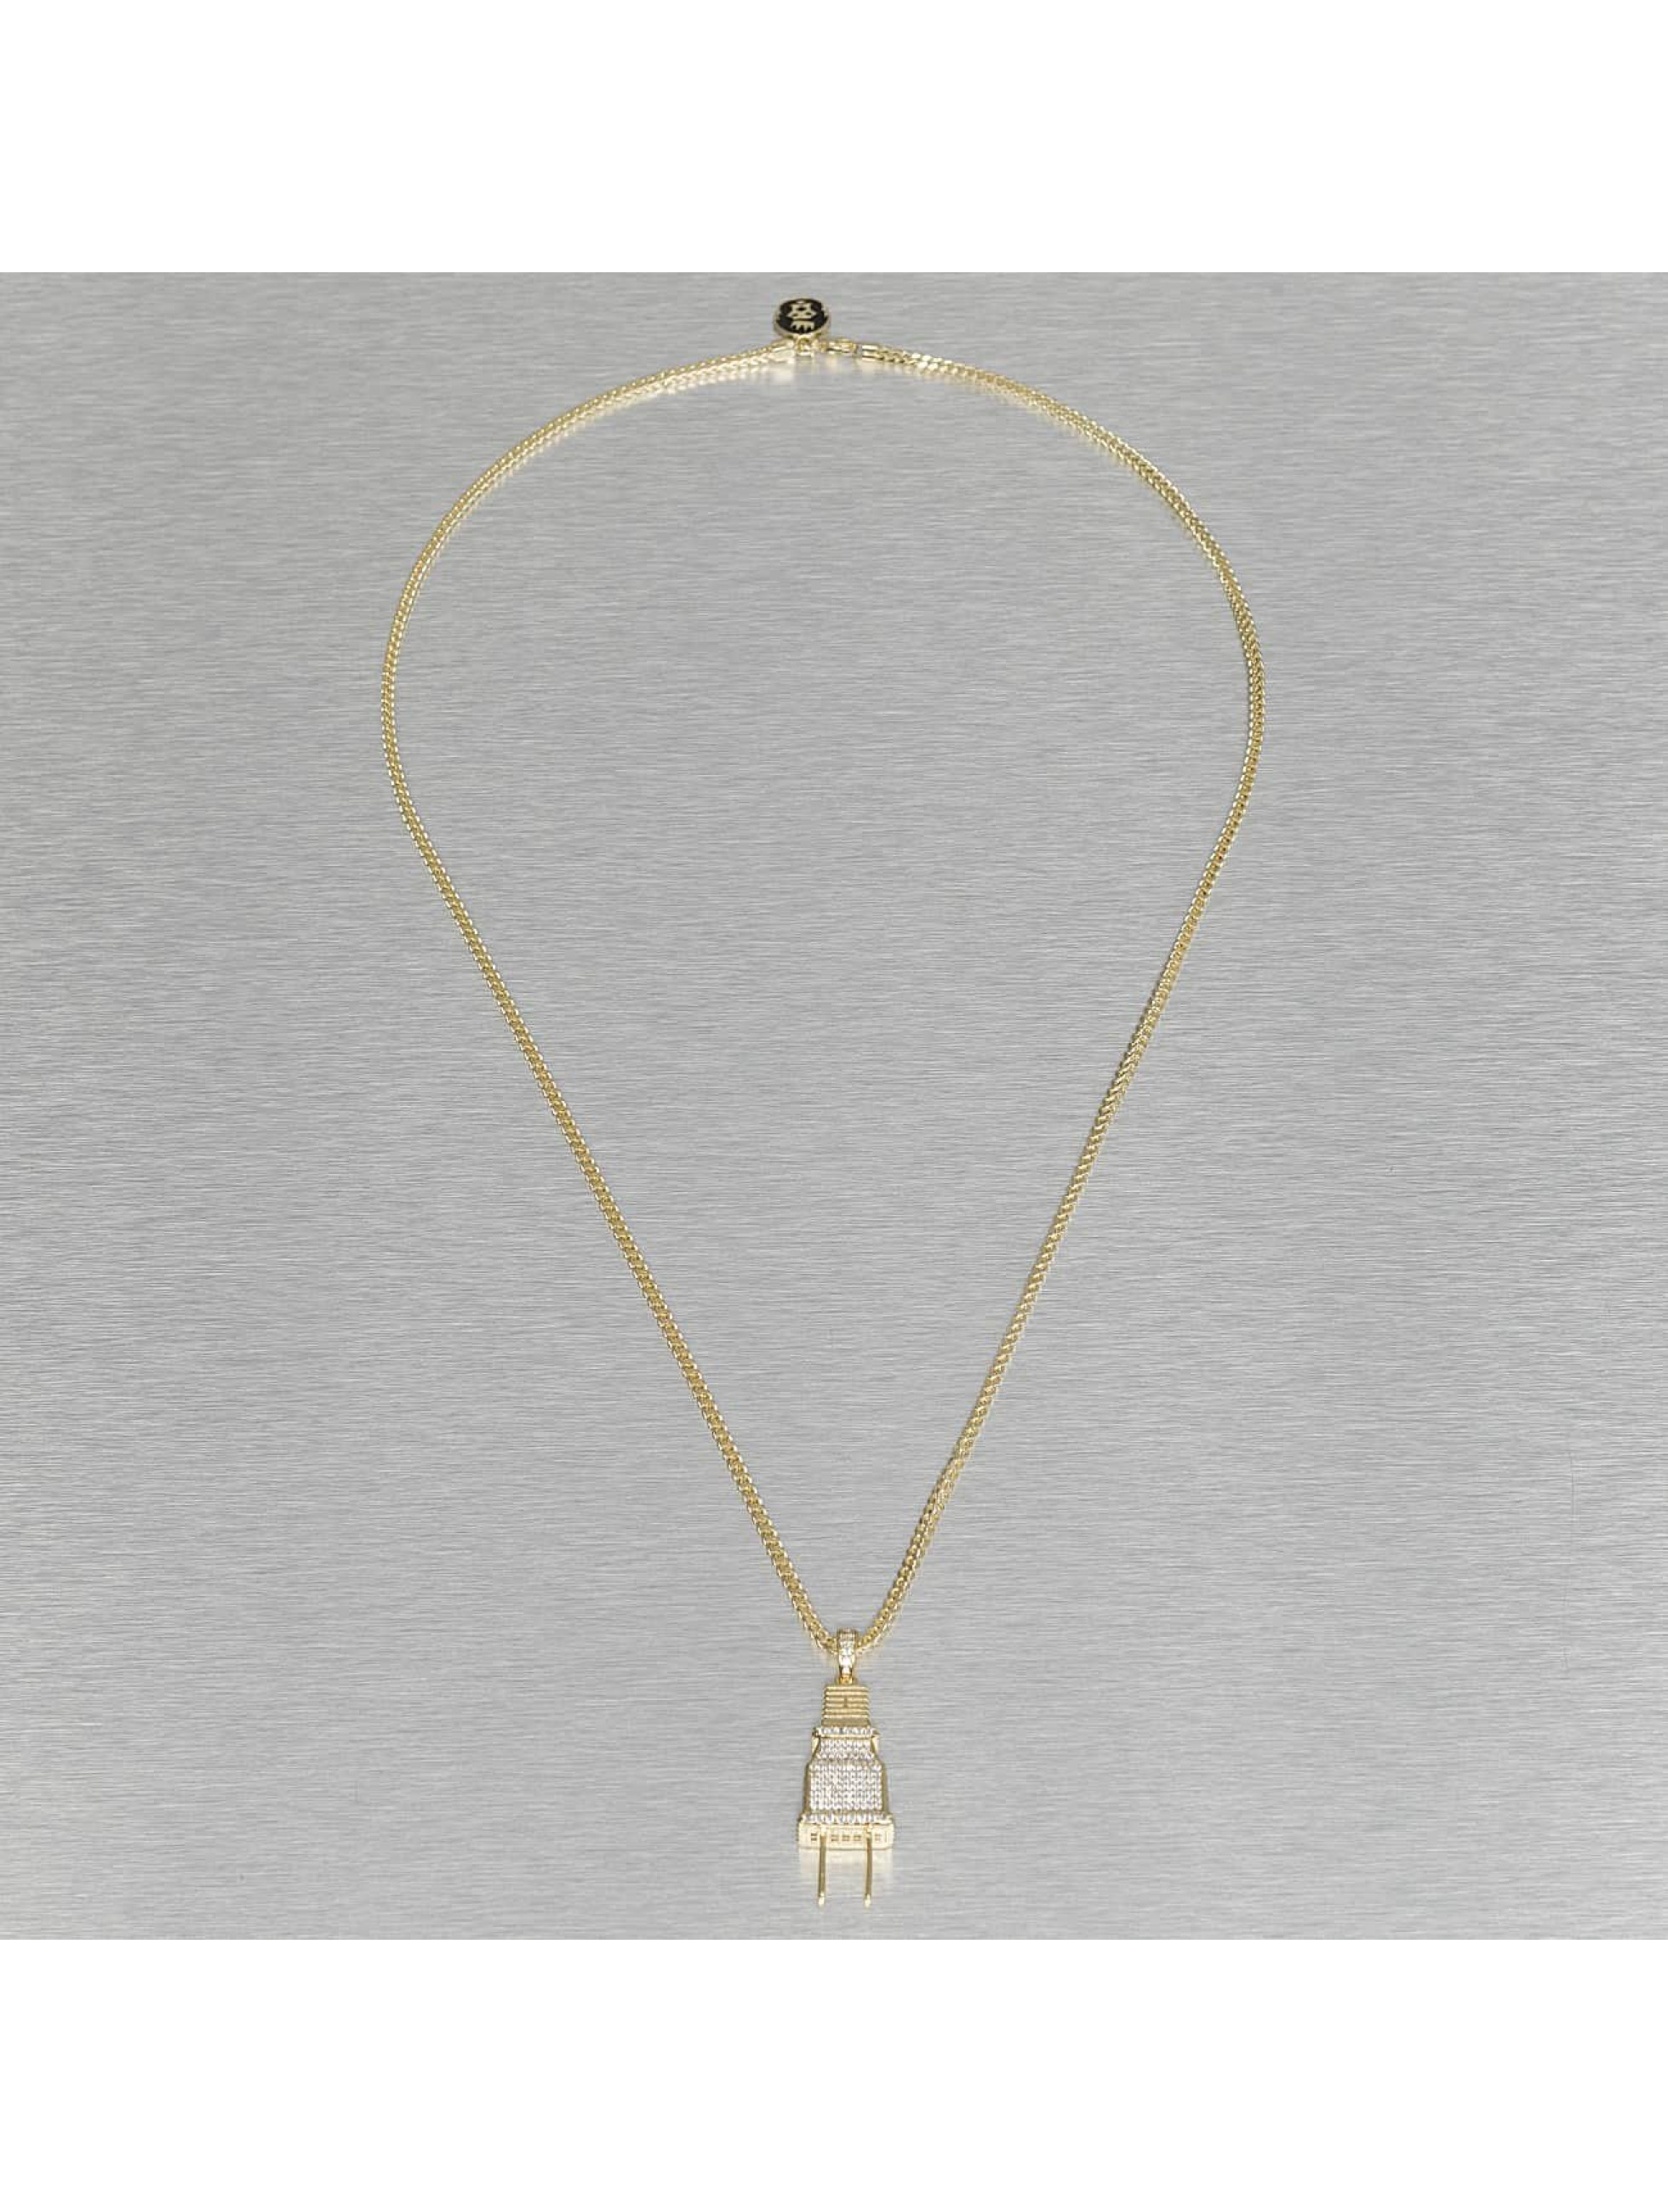 KING ICE Necklace Plug gold